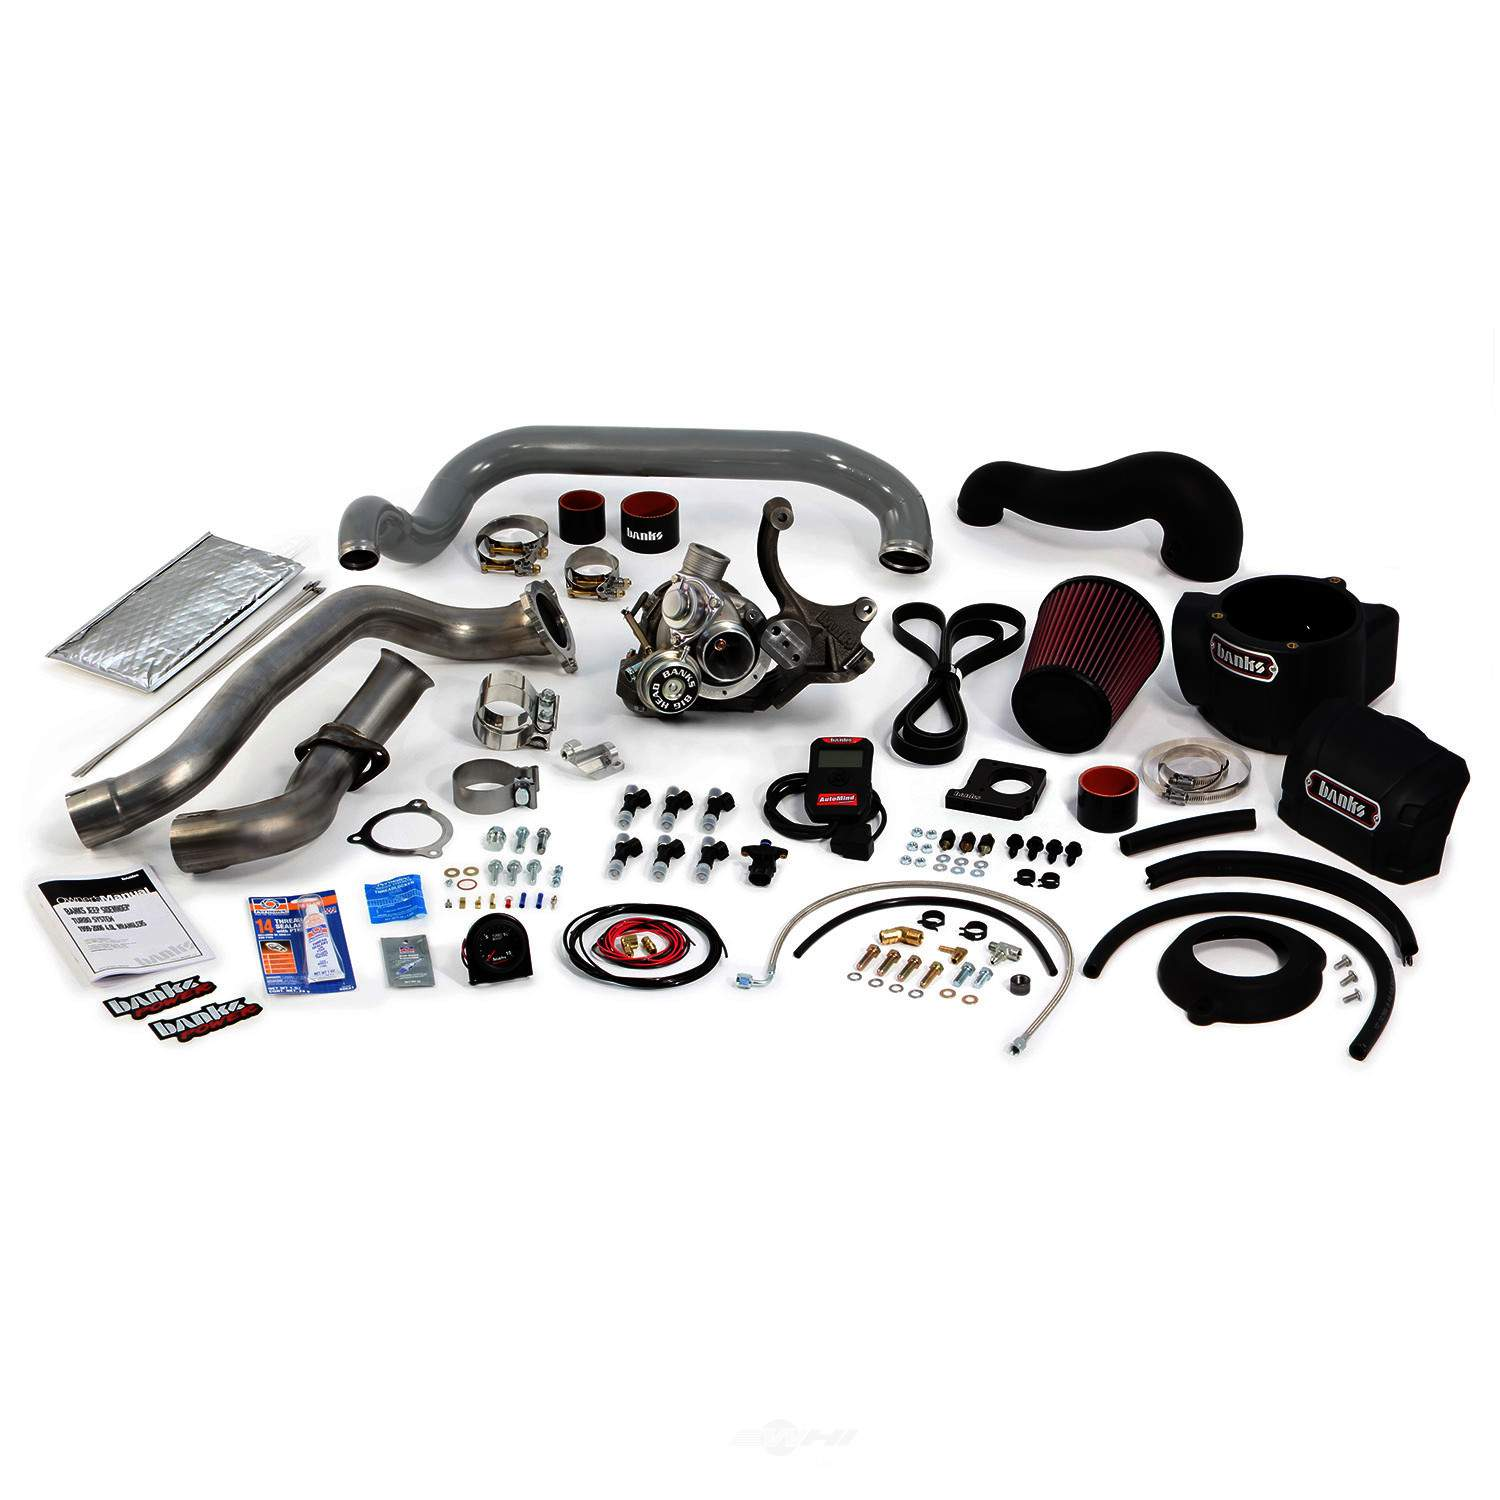 BANKS POWER - Sidewinder Turbo System - Non-Intercooled - w/ AutoMind Handheld Program - B1T 24241